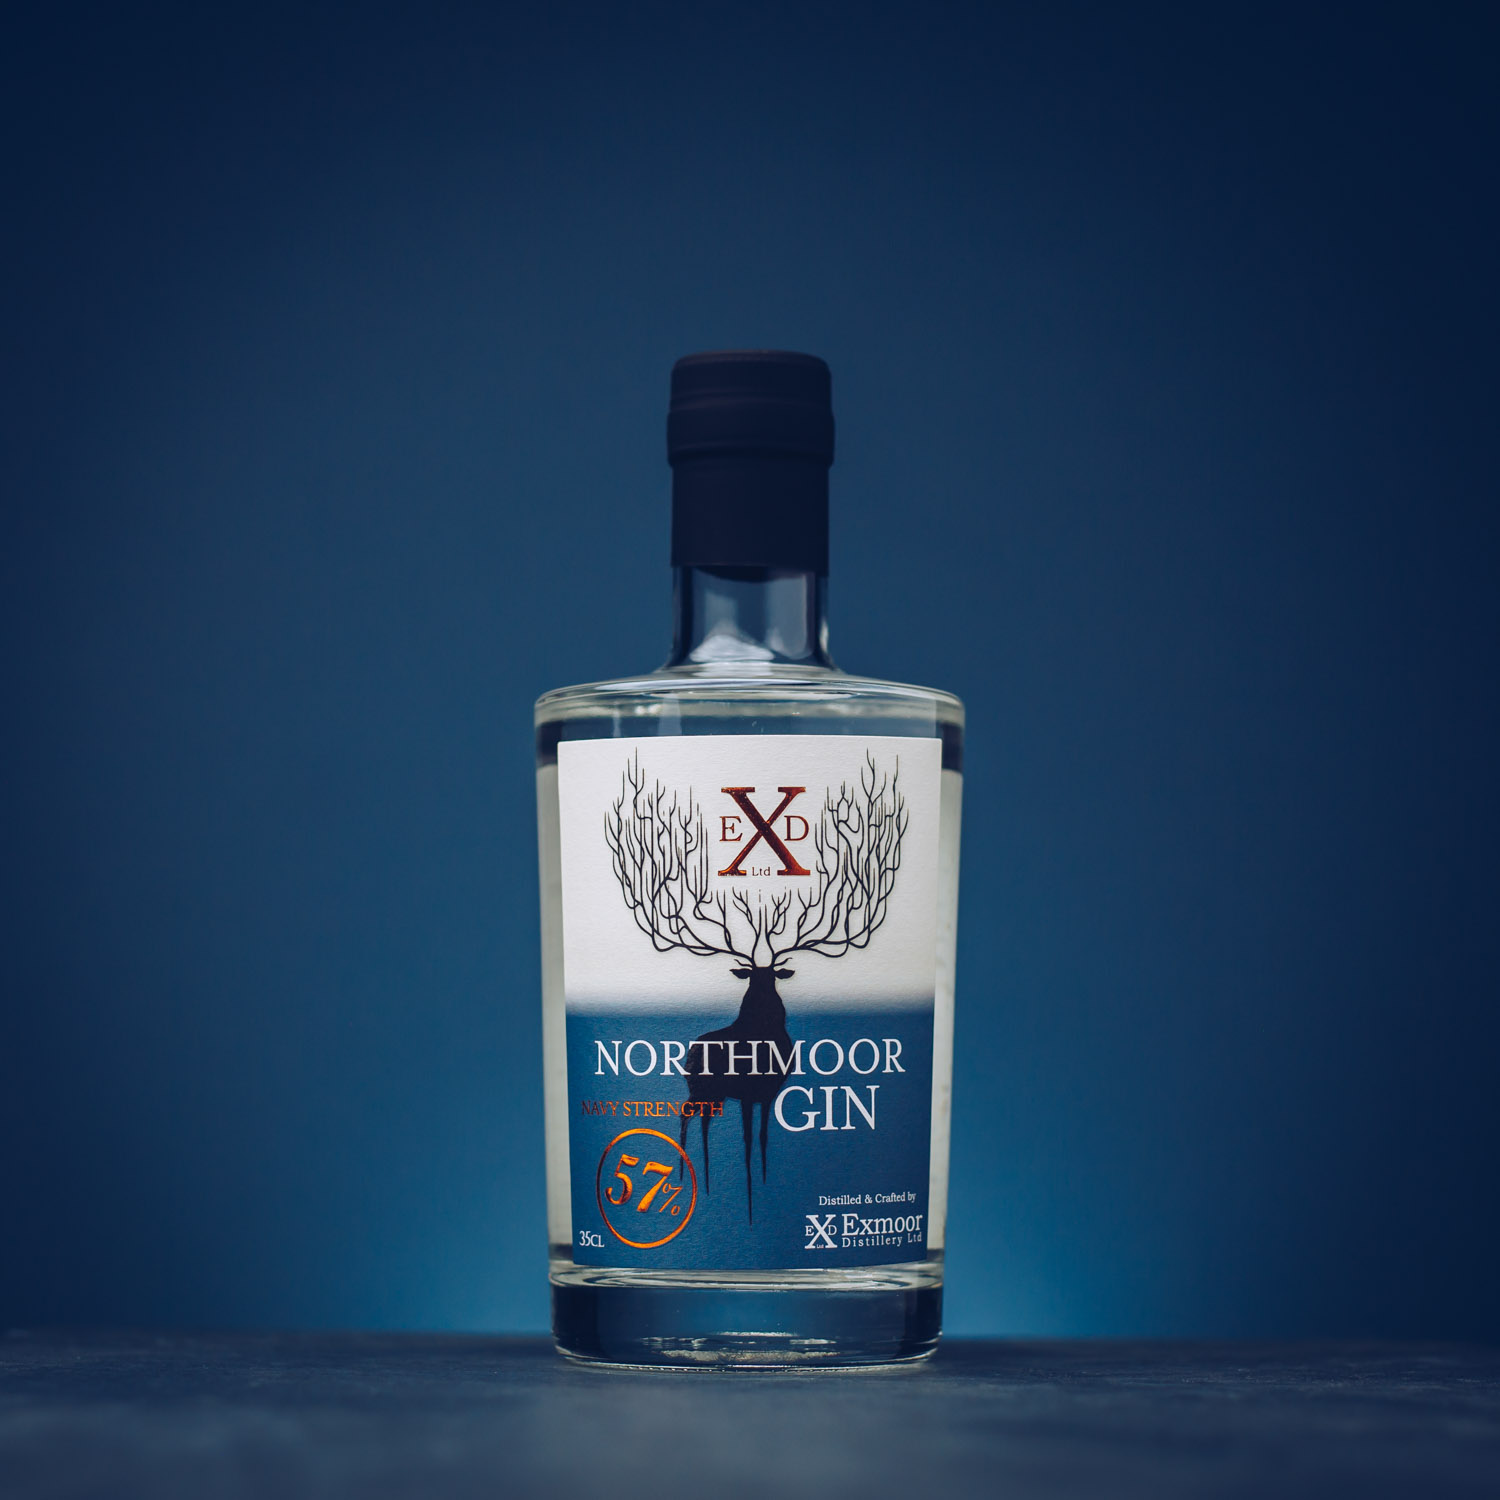 Navy Strength Gin - Exmoor Distillery